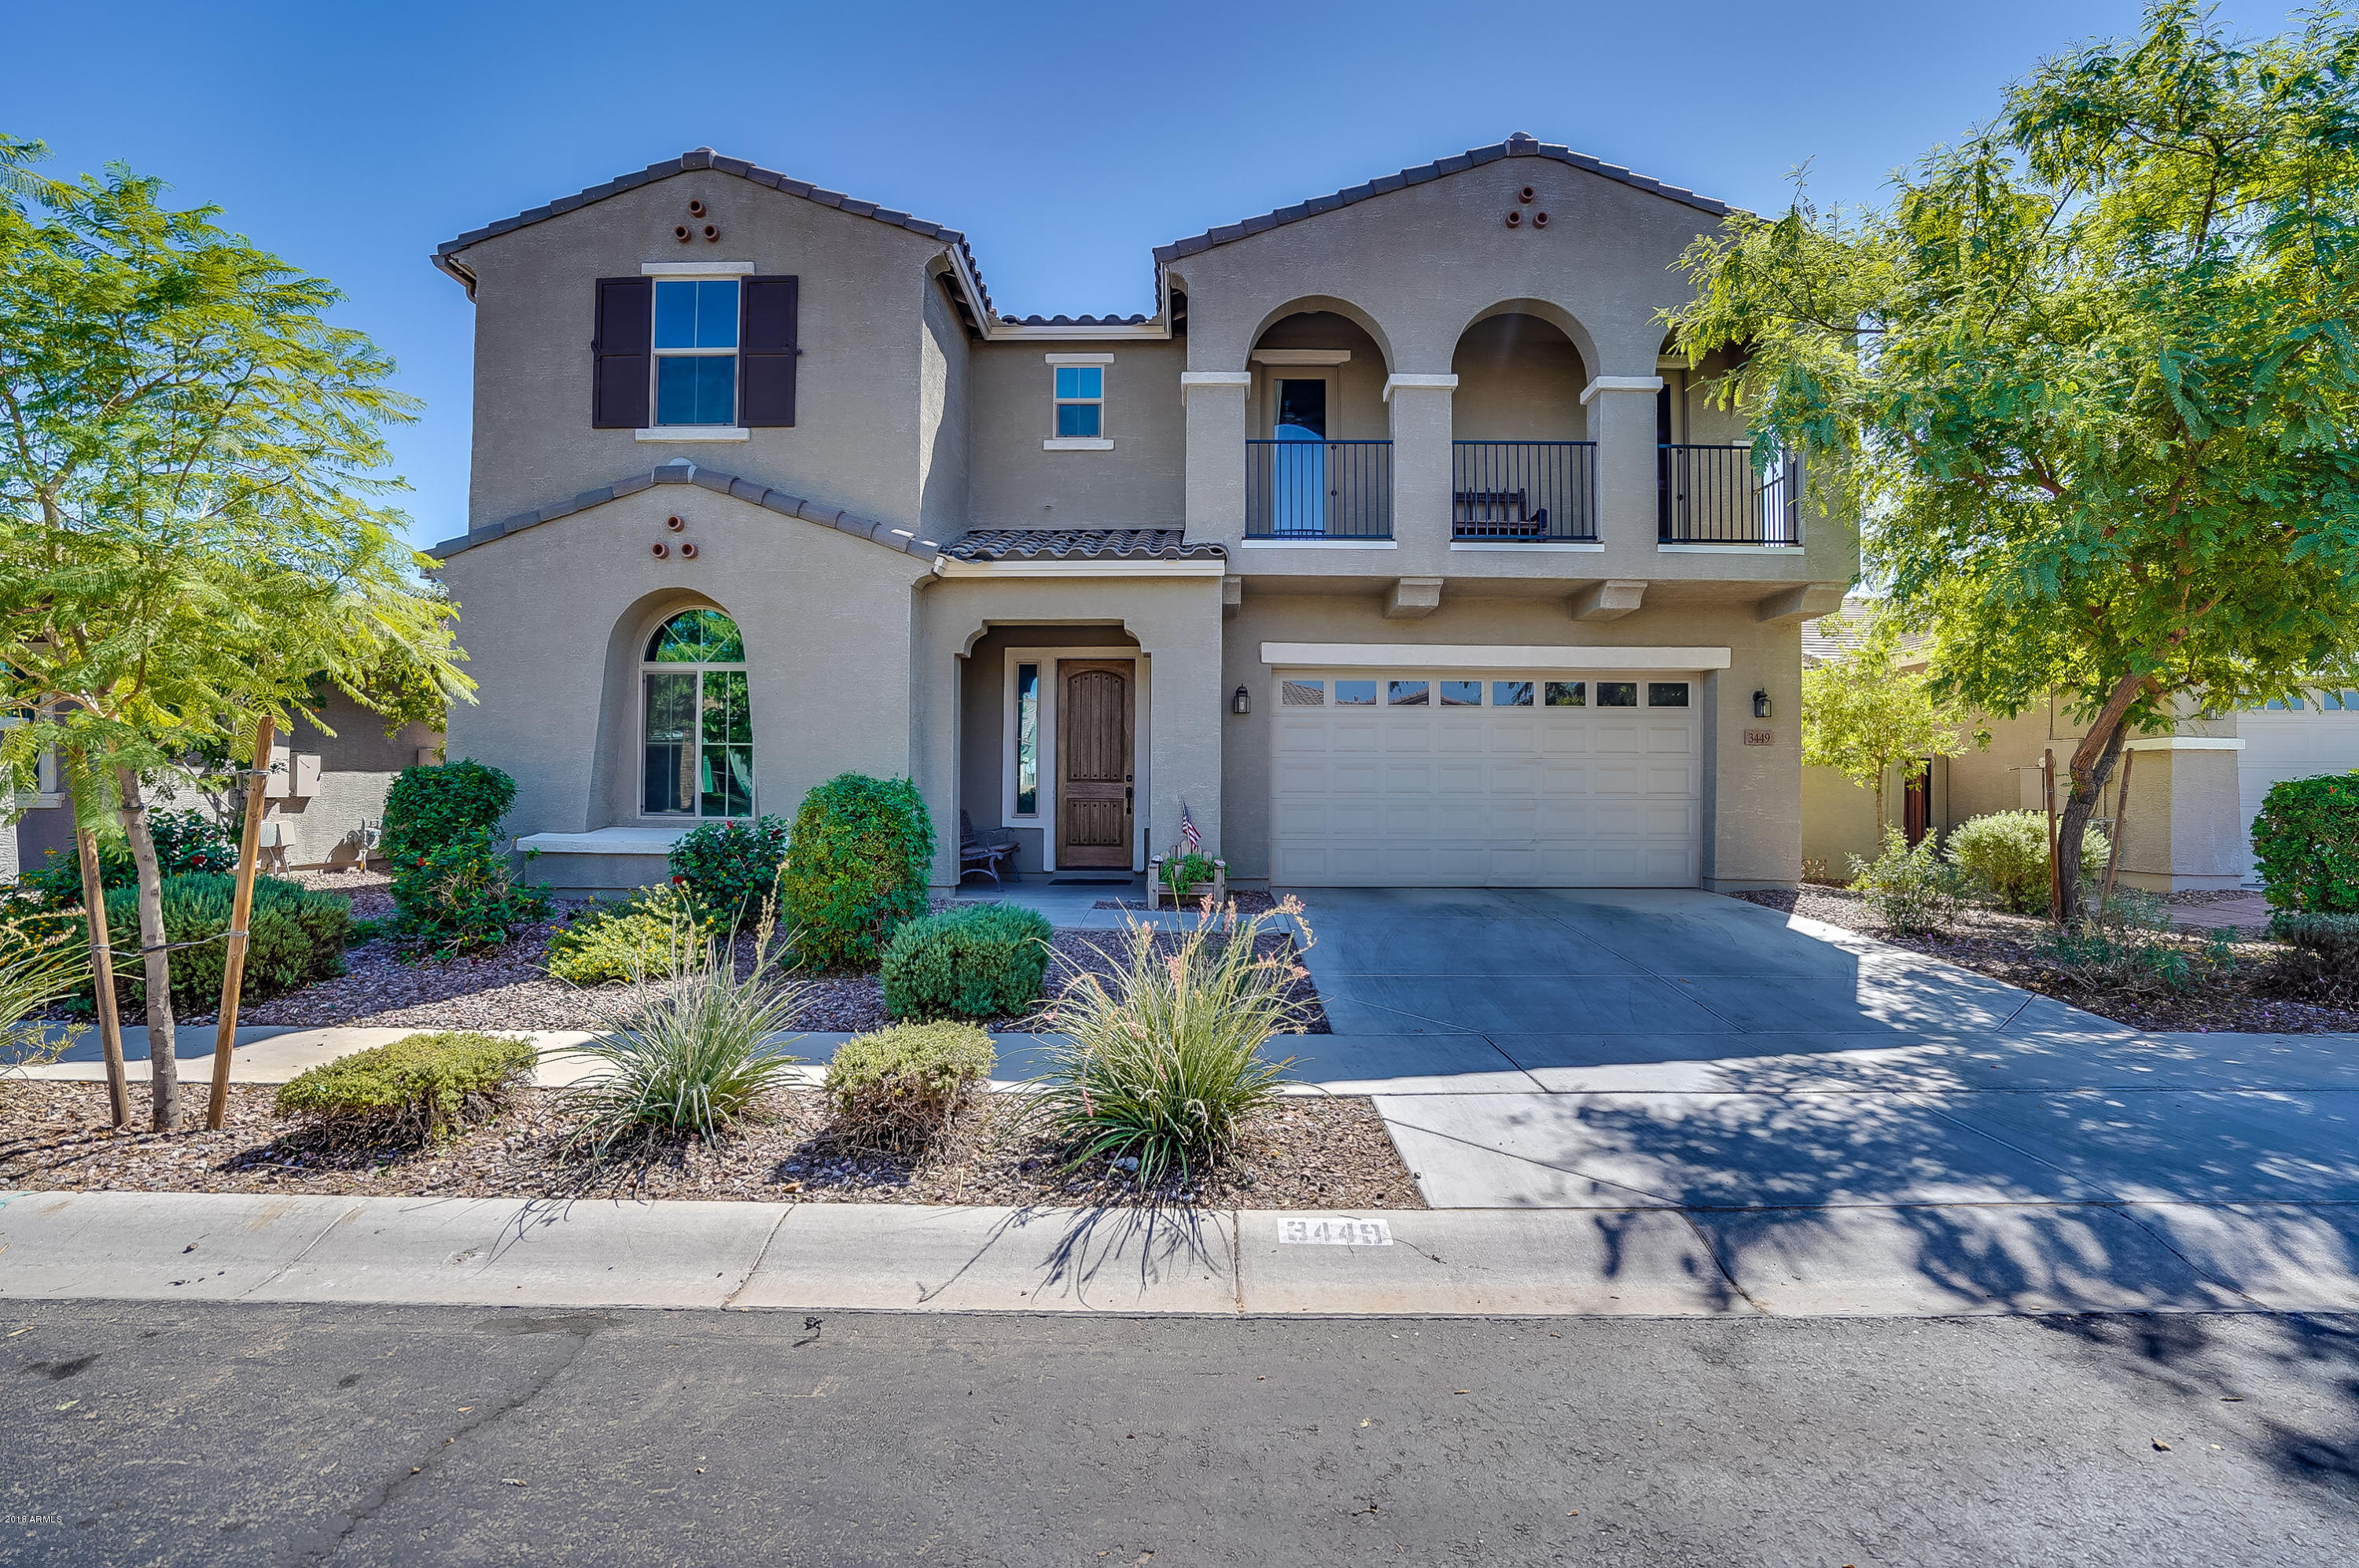 Photo of 3449 E HARRISON Street, Gilbert, AZ 85295